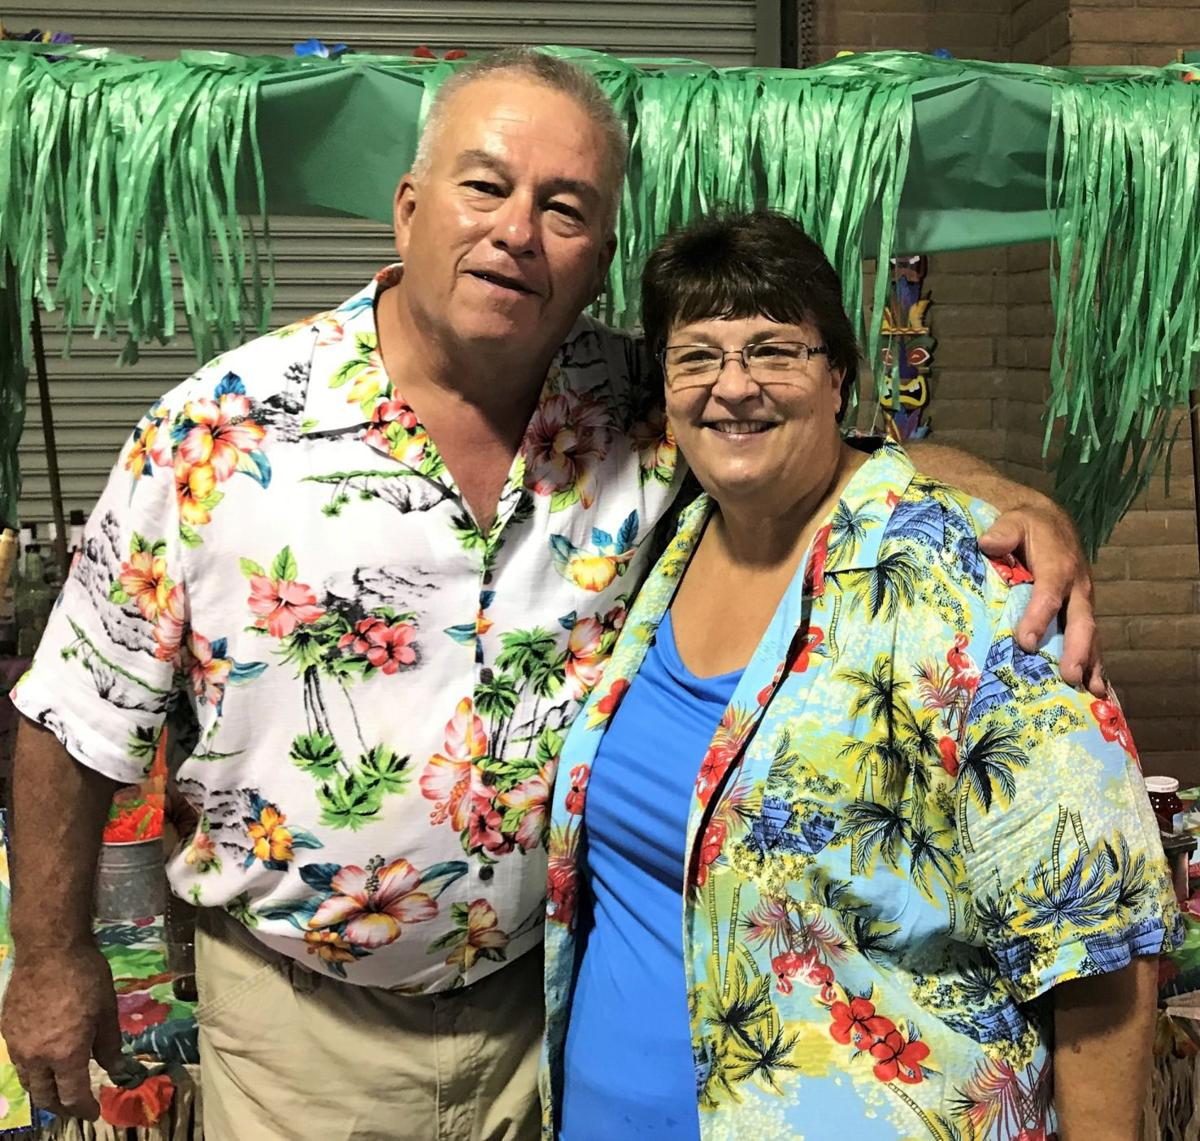 Mary and Louie at their 40th anniversary party, held over the Labor Day weekend in Safford, Ariz.